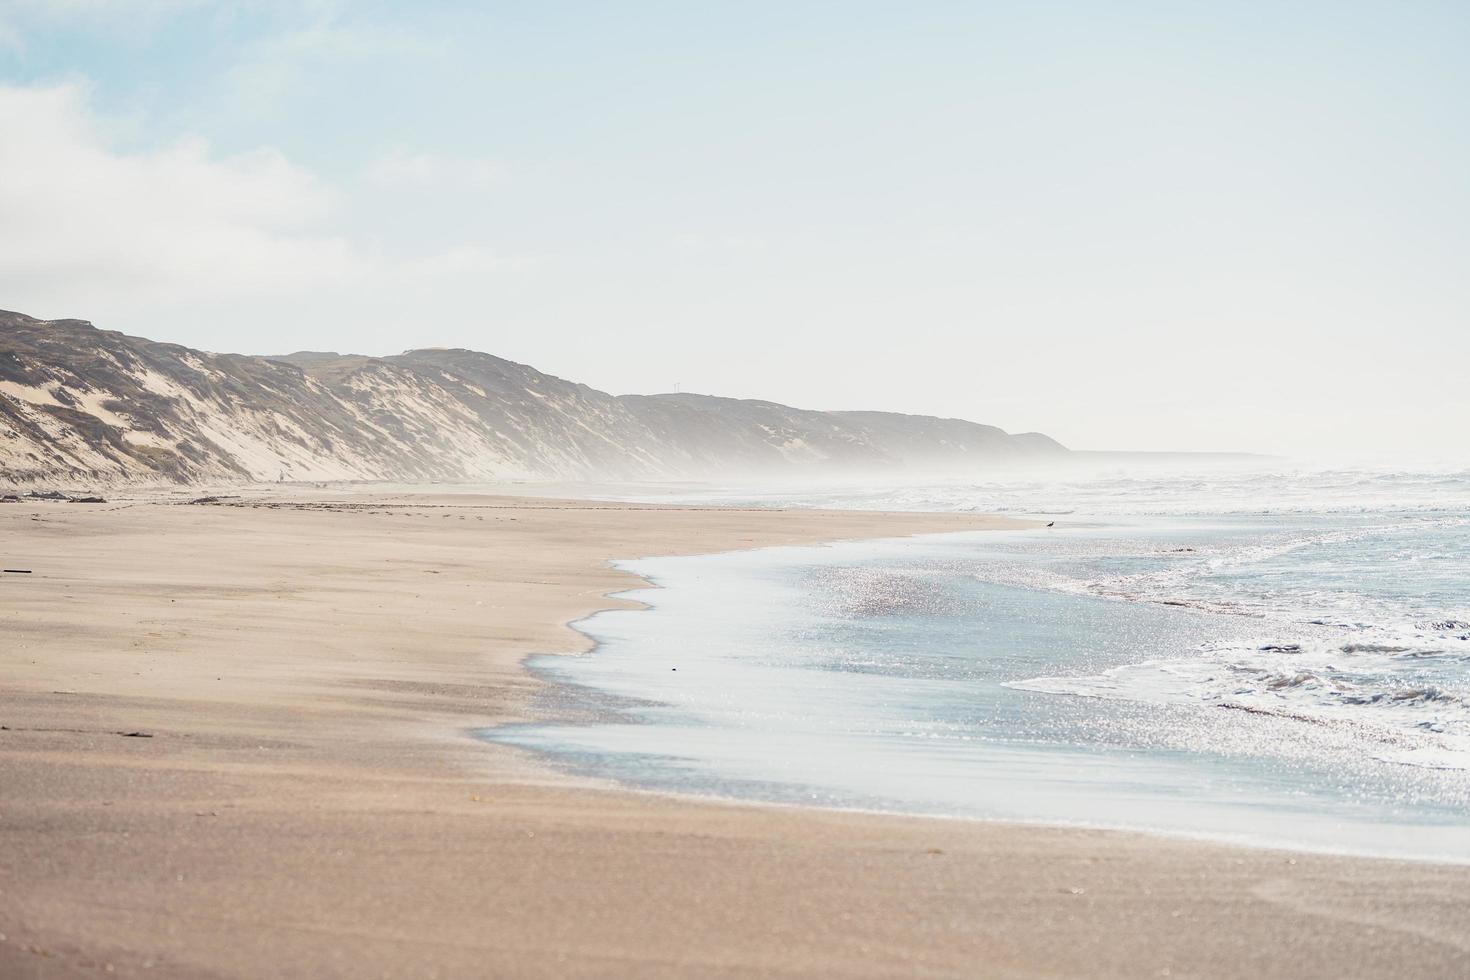 Misty beach during the day photo